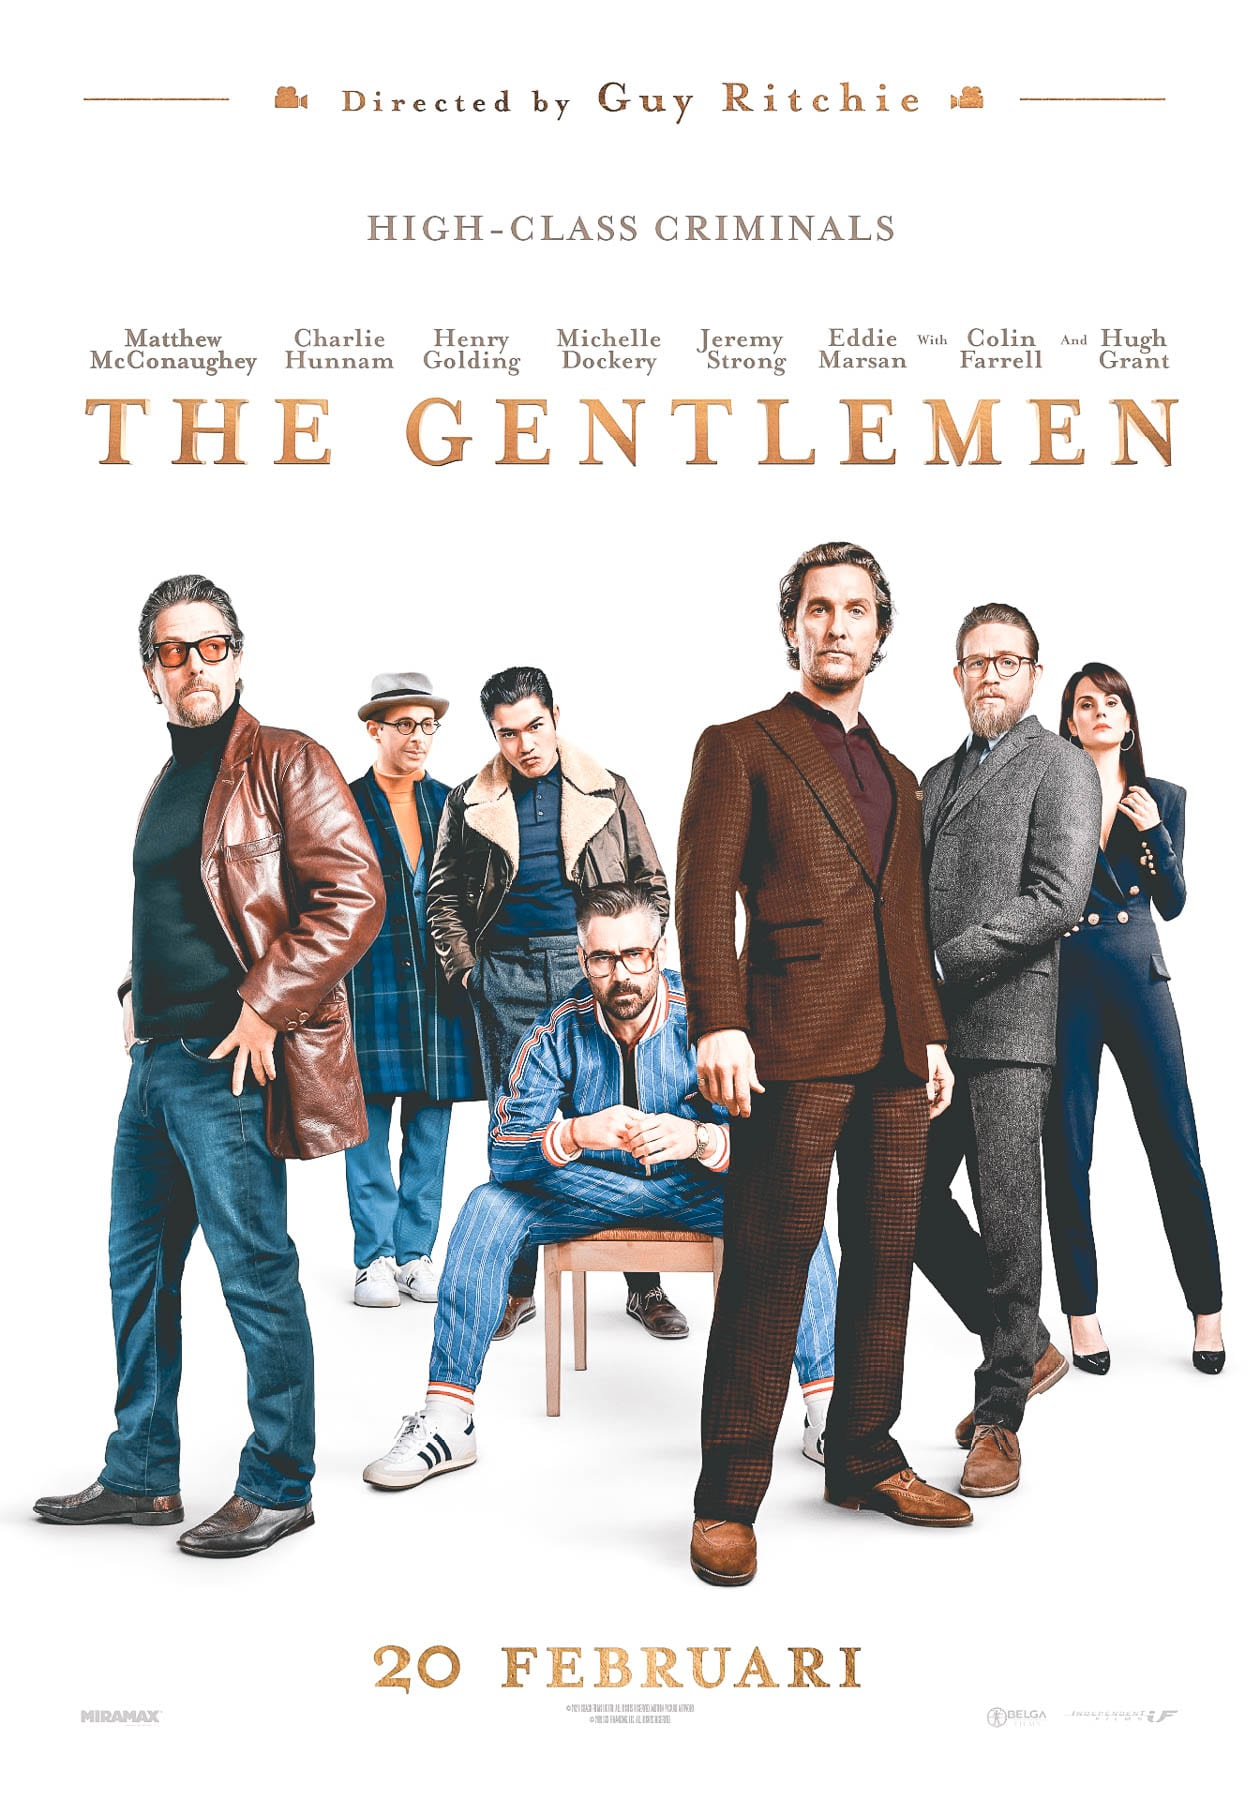 The Gentlemen trailer cast